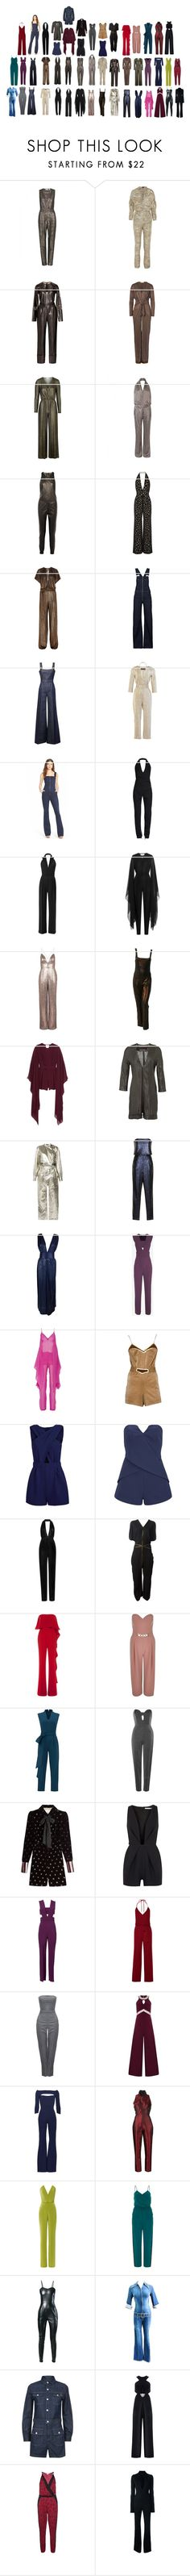 """""""JUMPSUITS: My favorites-1"""" by misshollowpointslug ❤ liked on Polyvore featuring sass & bide, Pedro del Hierro, Elie Saab, Emilio Pucci, Oh My Love, Gucci, R13, Cushnie Et Ochs, Temperley London and Citizens of Humanity"""